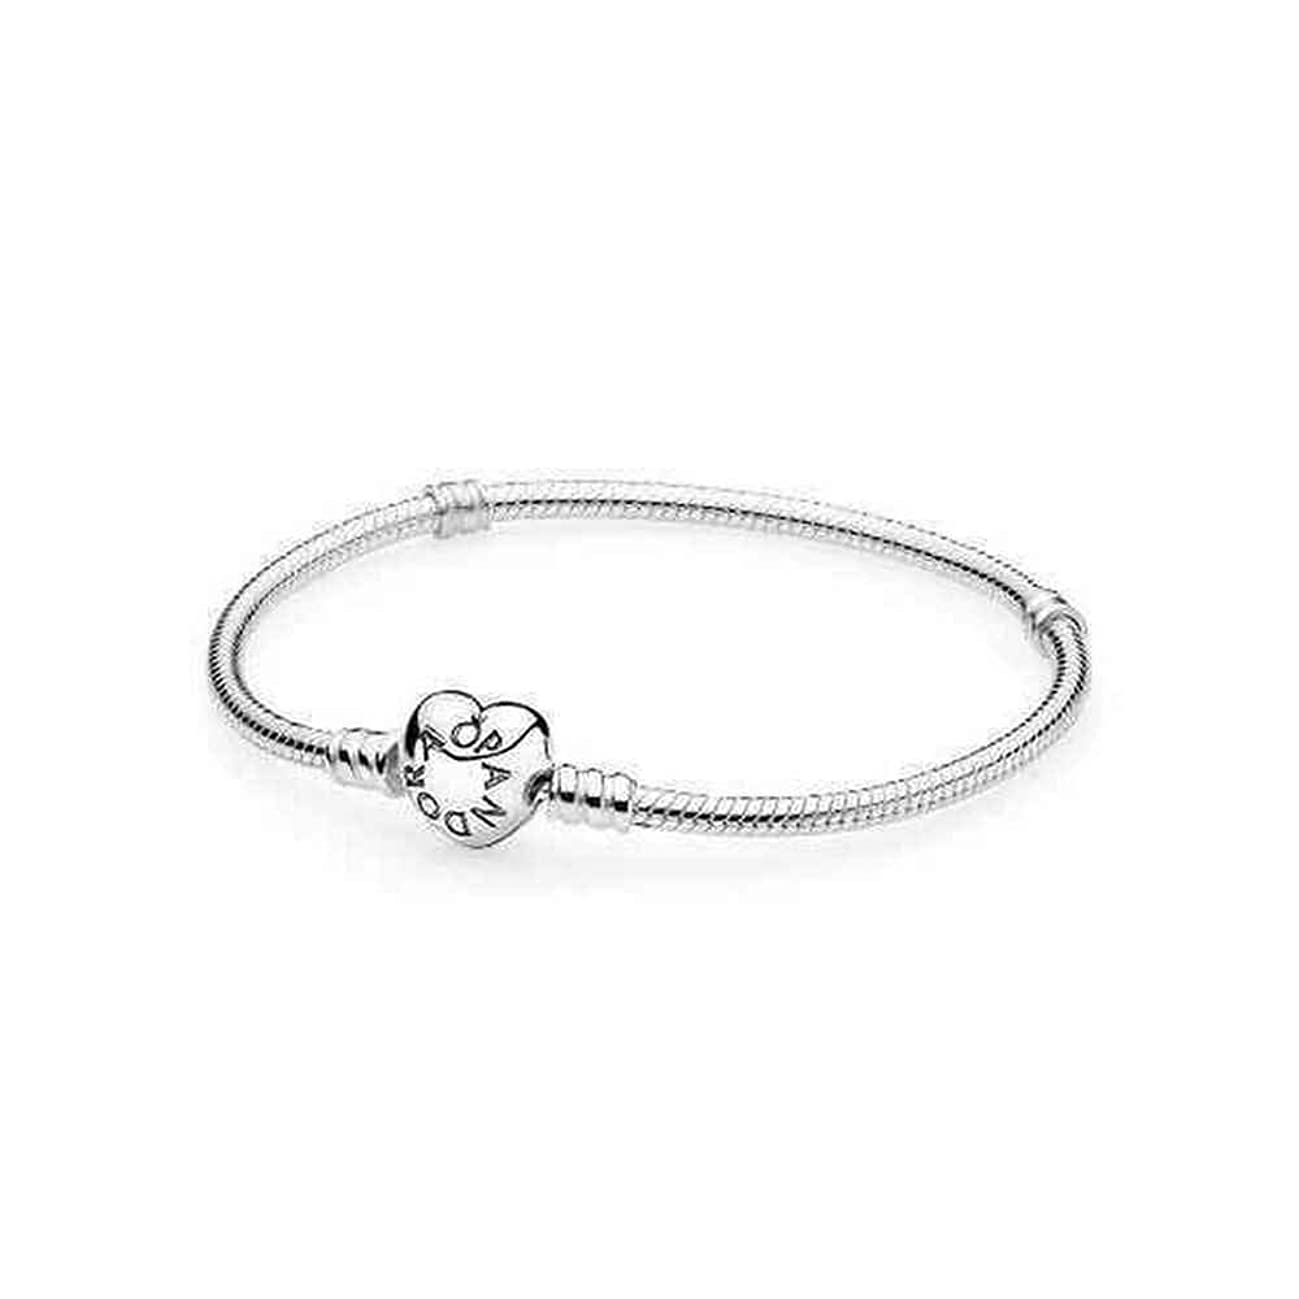 PANDORA Moments Silver Charm Bracelet with Heart Clasp 590719